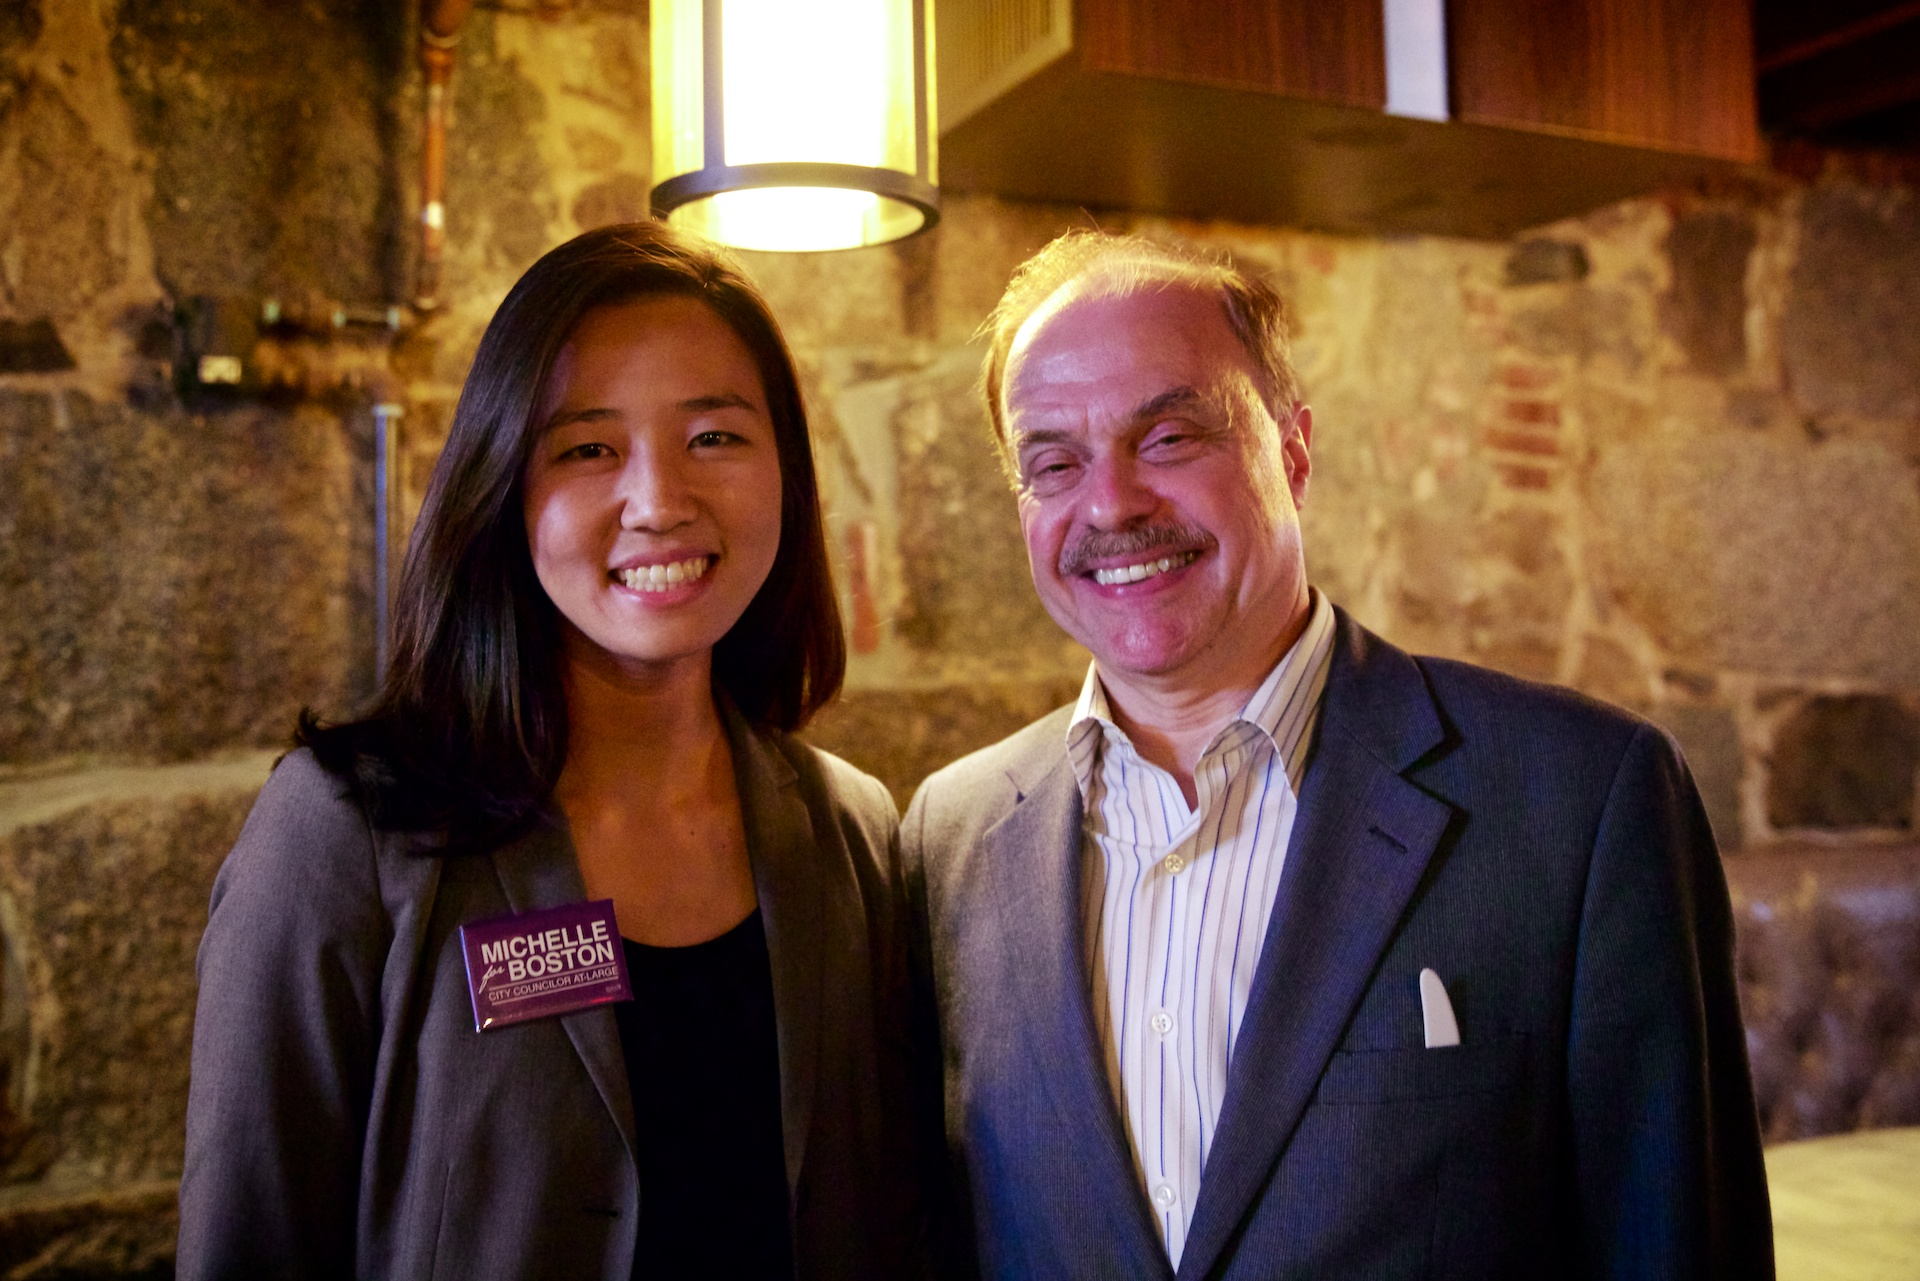 City Councilor At Large Candidate Michelle Wu With Jim Salini At The